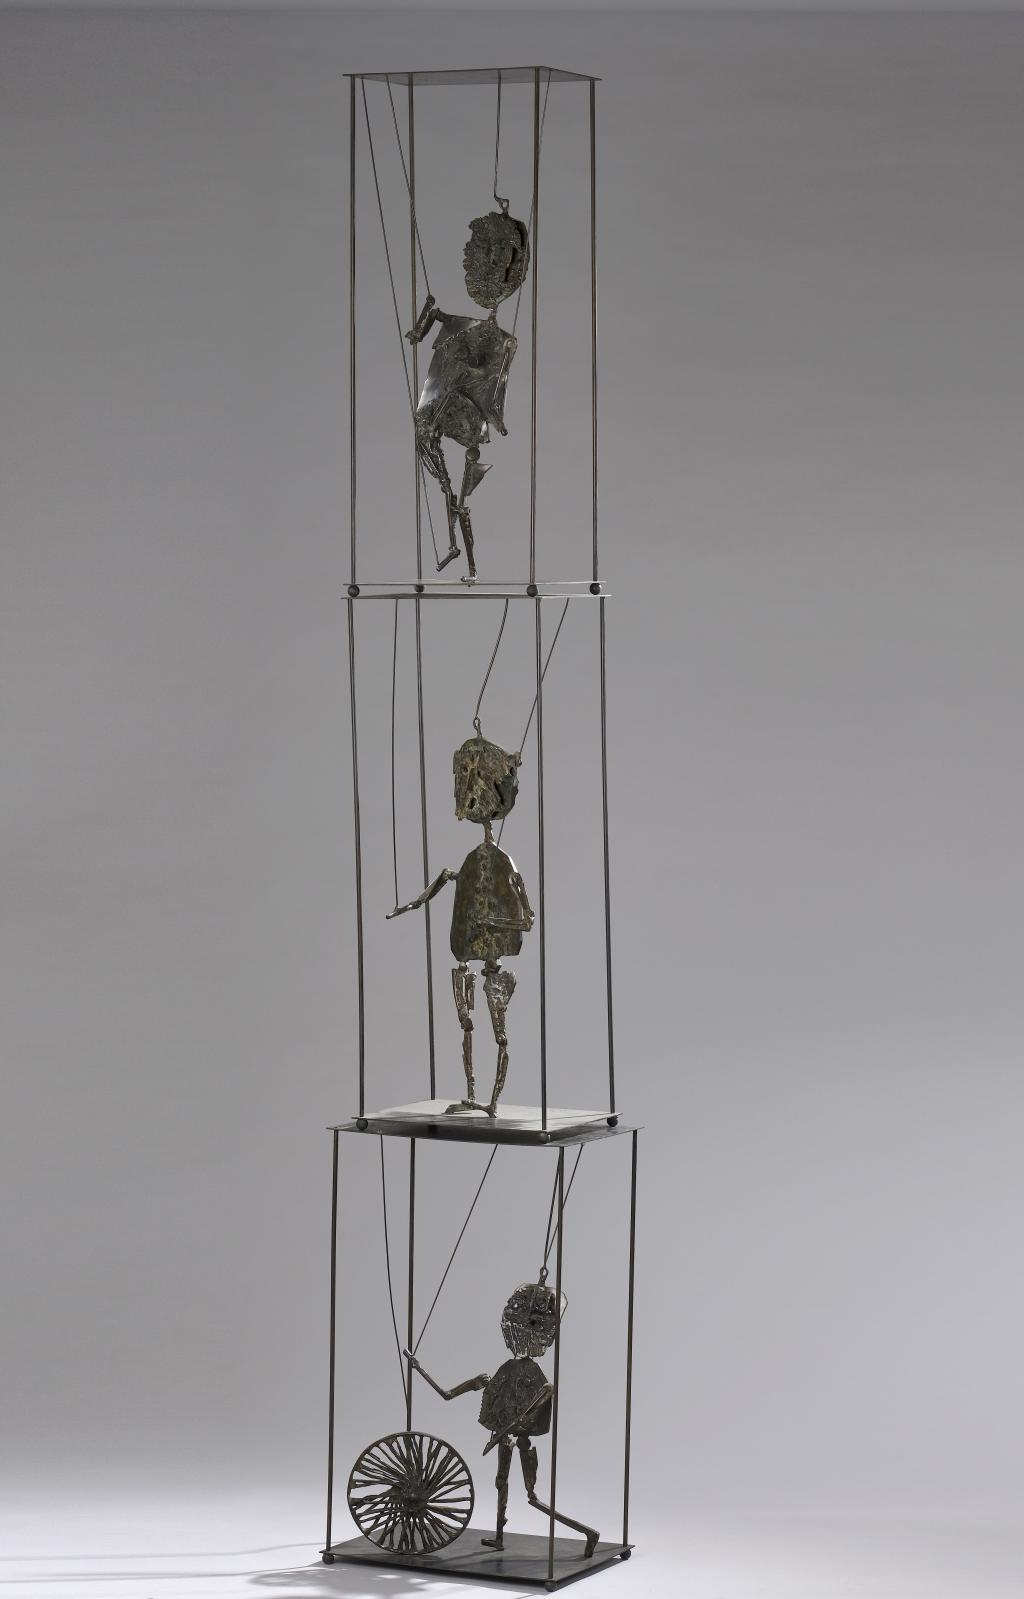 César (1921–1998), Les Marionnettes, 1955, vertical triptych comprising three bronze proofs with a brownish-green patina, each figure in a